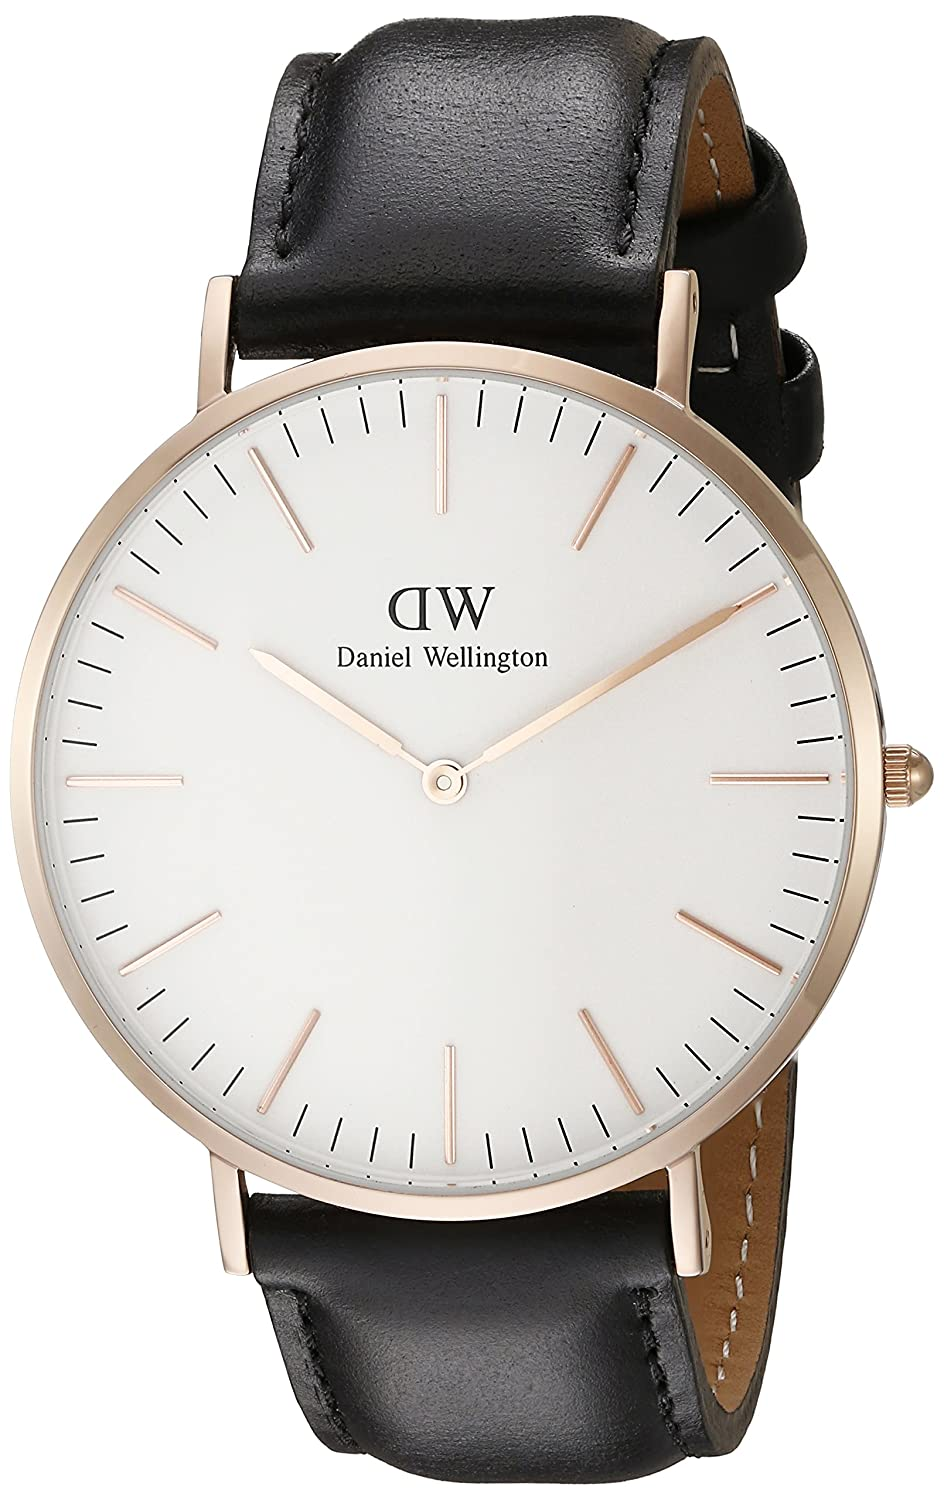 mens watches shop amazon uk daniel wellington men s quartz watch classic sheffield rose black leather strap